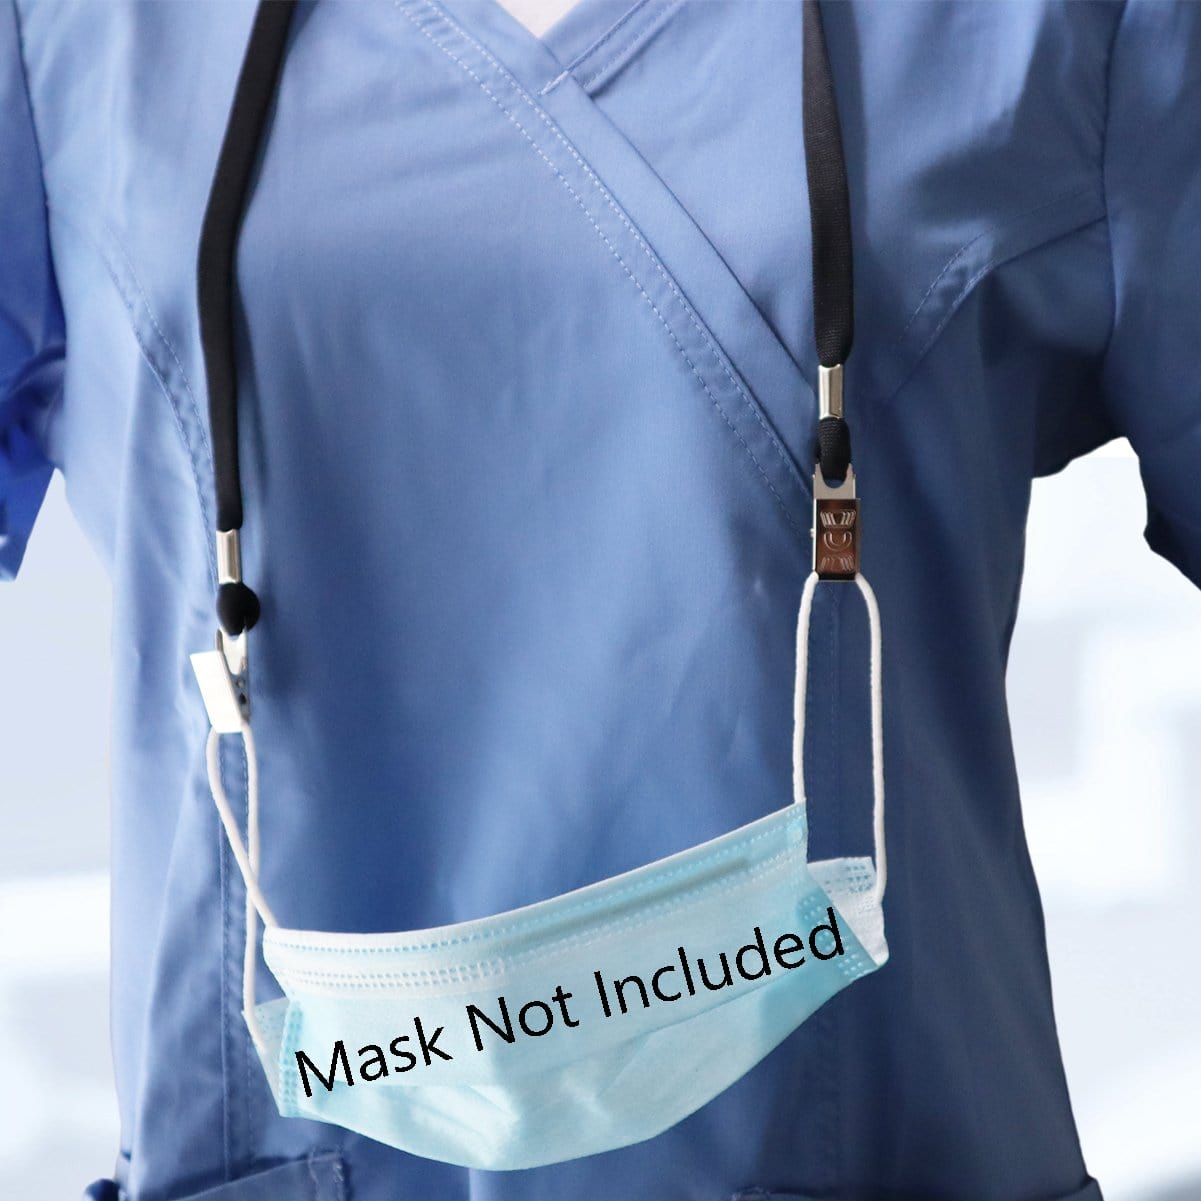 5 Pack Face Mask Lanyards with Bulldog Clips - Comfortable Premium Economy Neck Strap Ear Saver/Facemask Holder